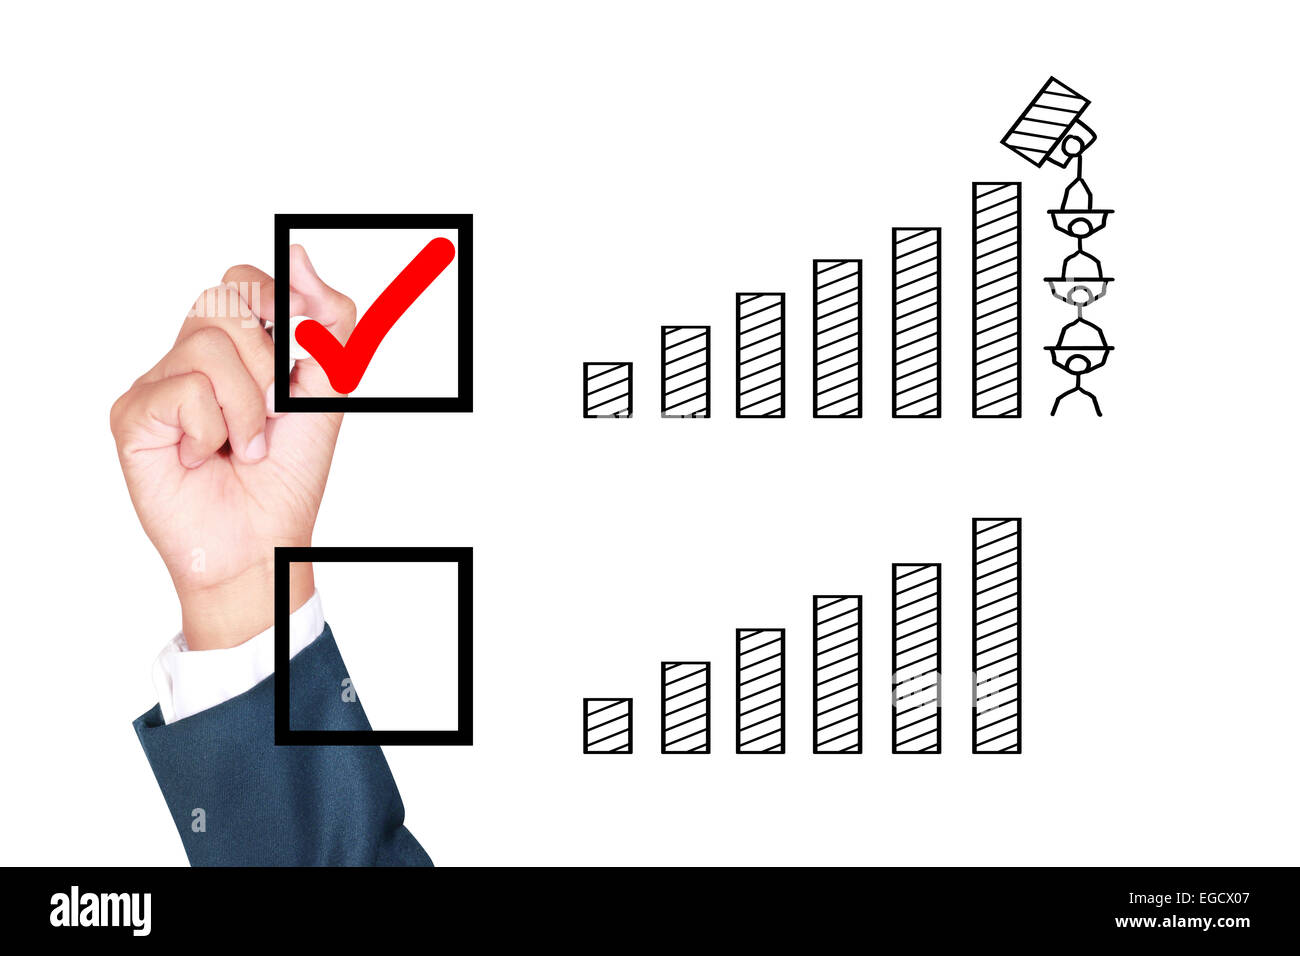 motivation teamwork wish result growth better solution for success stock photo motivation teamwork wish result growth better solution for success by businessman tick box on white background